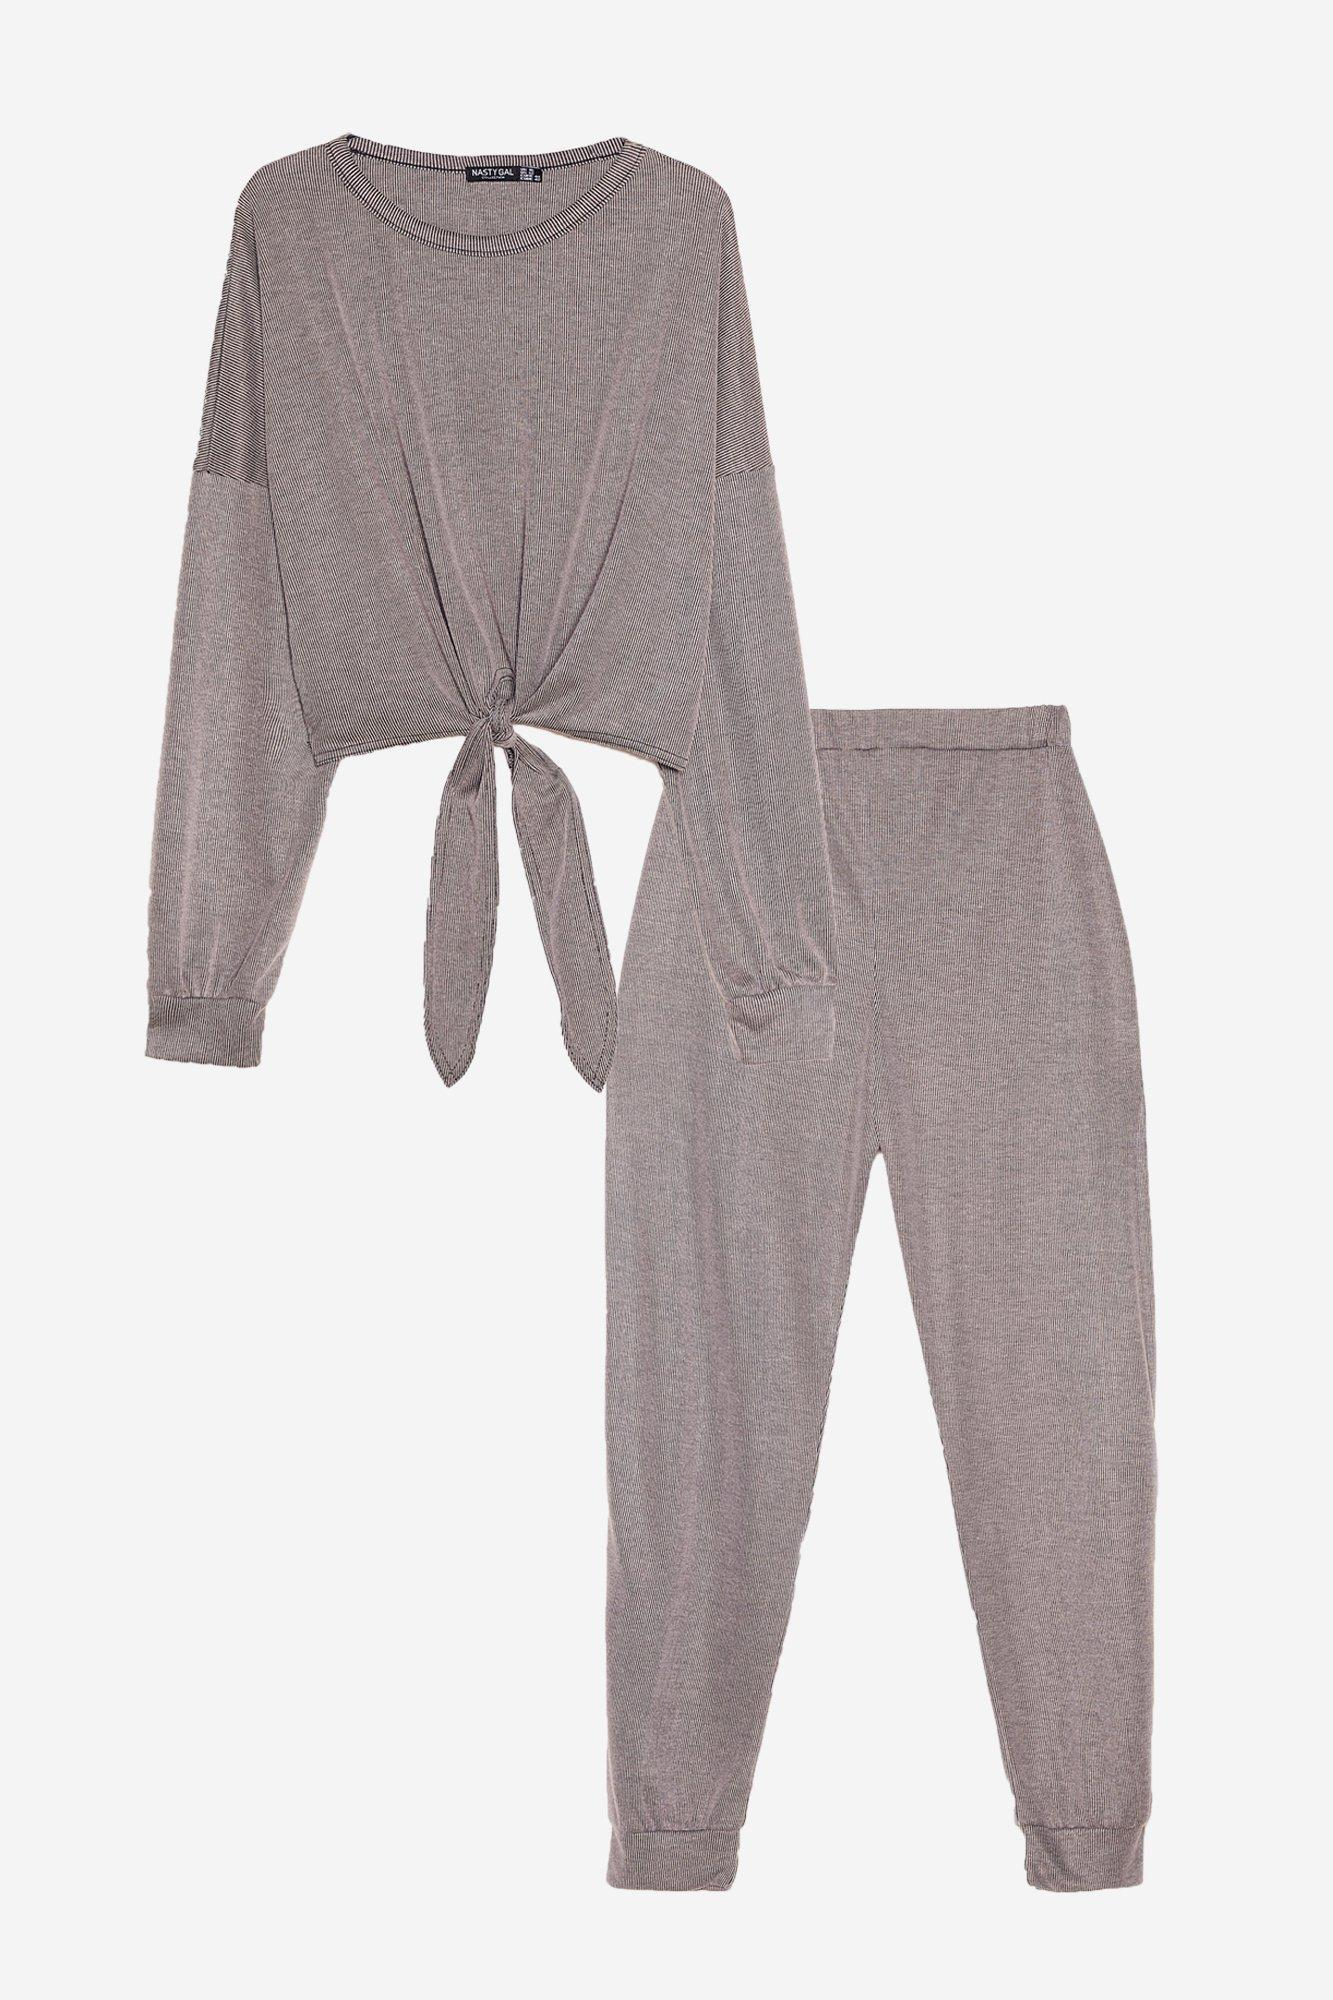 Tie Miss You Baby Plus Ribbed Top and Jogger Set 16